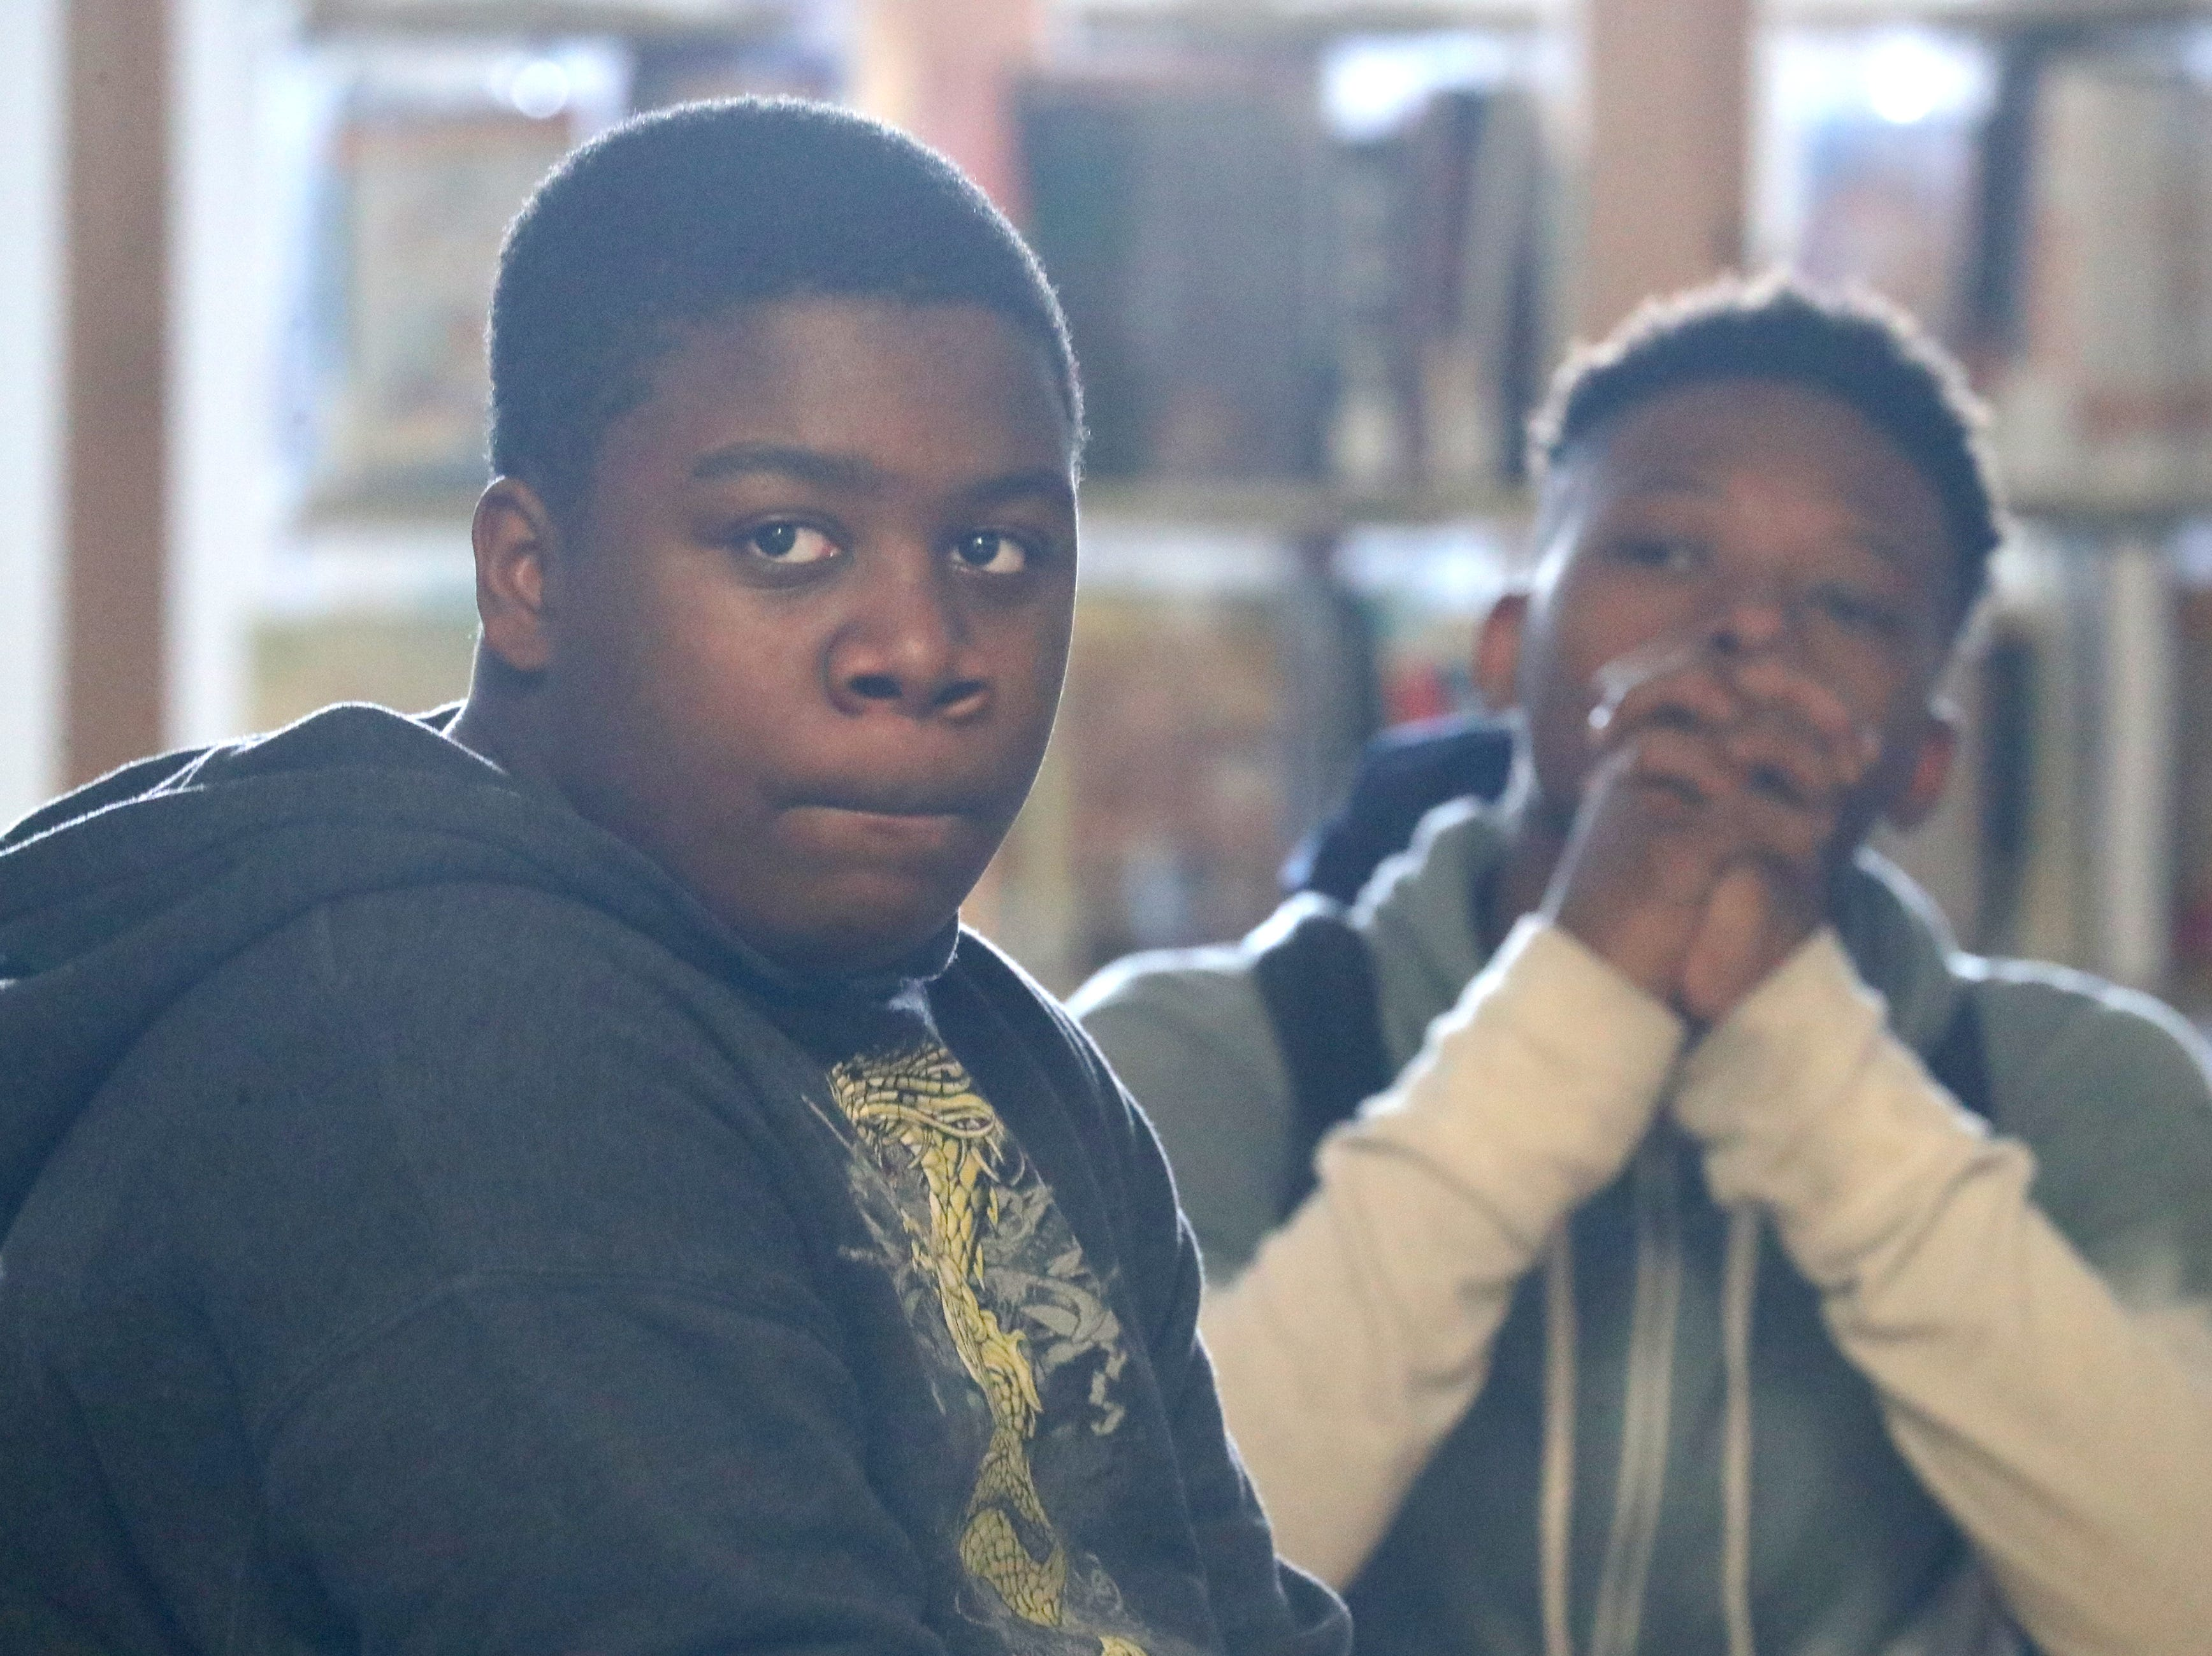 Eighth-graders Ladarius Dailey (left) and Kani Woolridge listen as Jerome Johnson a library specialist, speaks about the history of the equal rights movement.